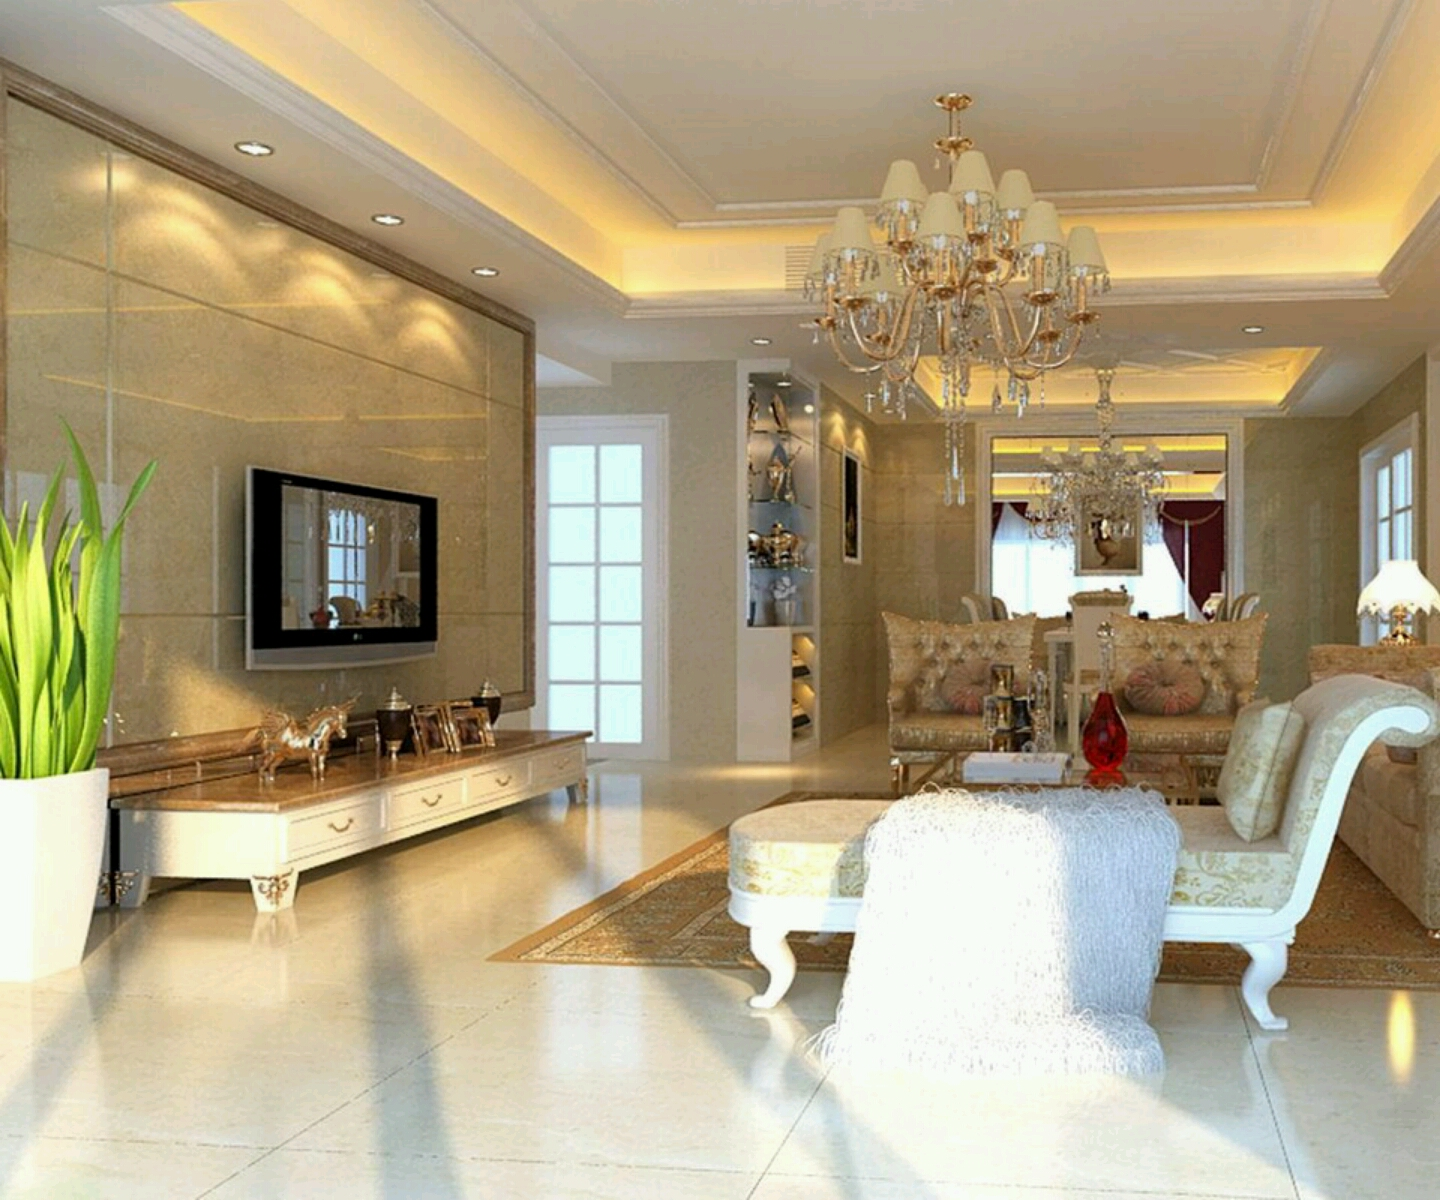 New home designs latest luxury homes interior decoration living room designs ideas for Room interior decoration